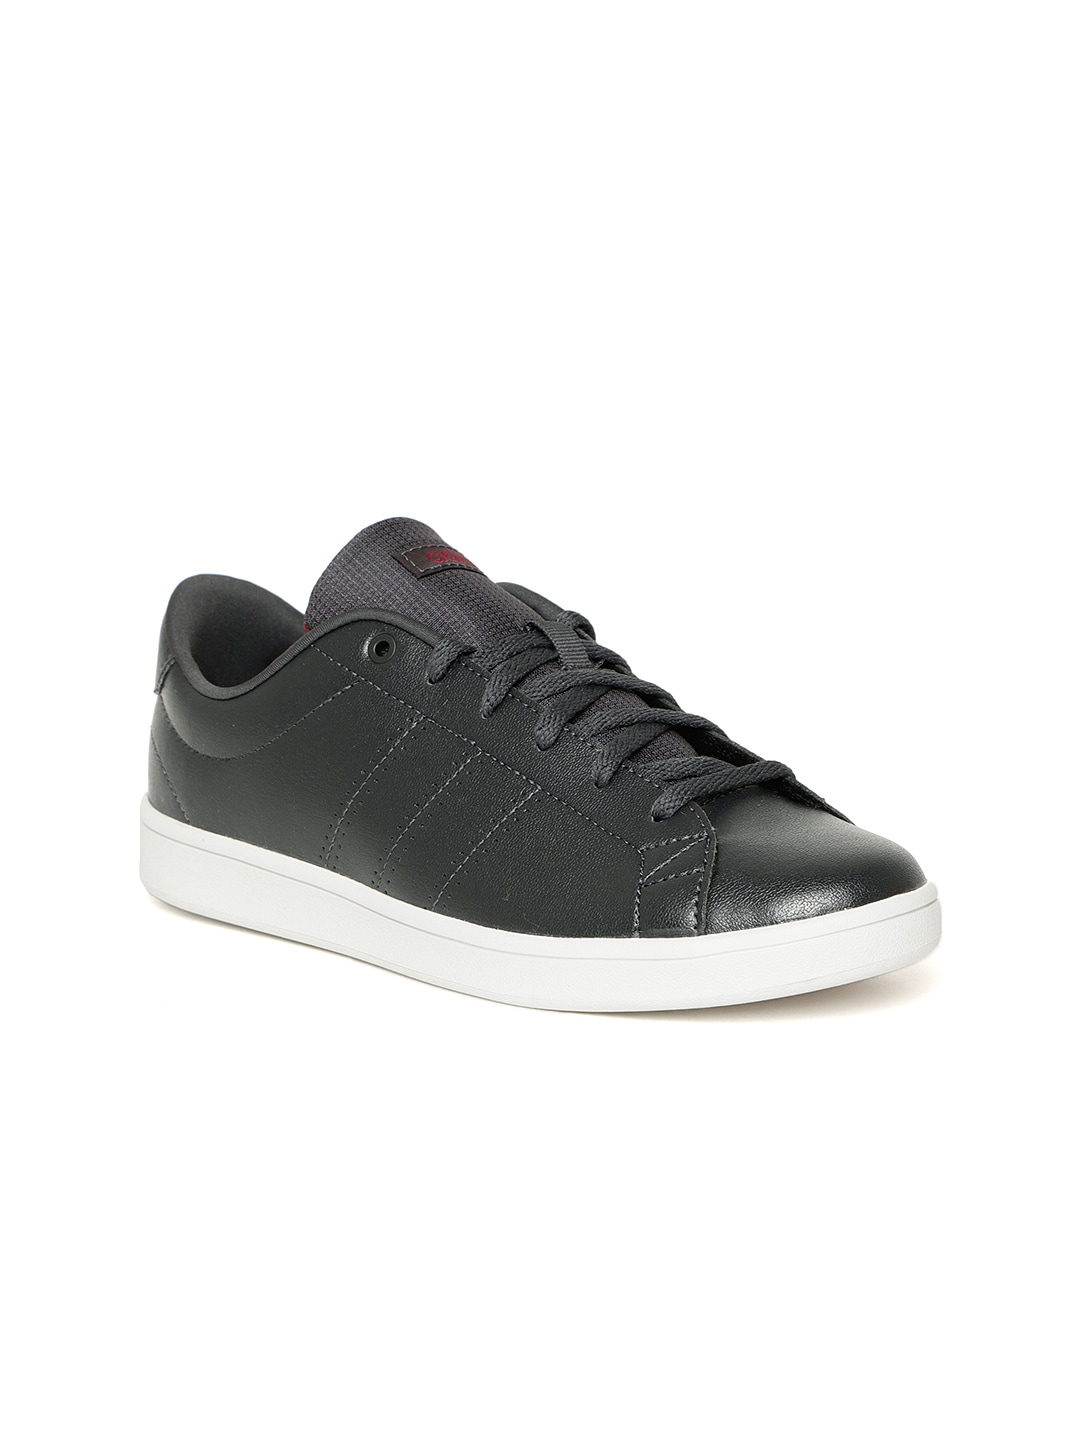 huge selection of 7406d 11a25 adidas - Exclusive adidas Online Store in India at Myntra